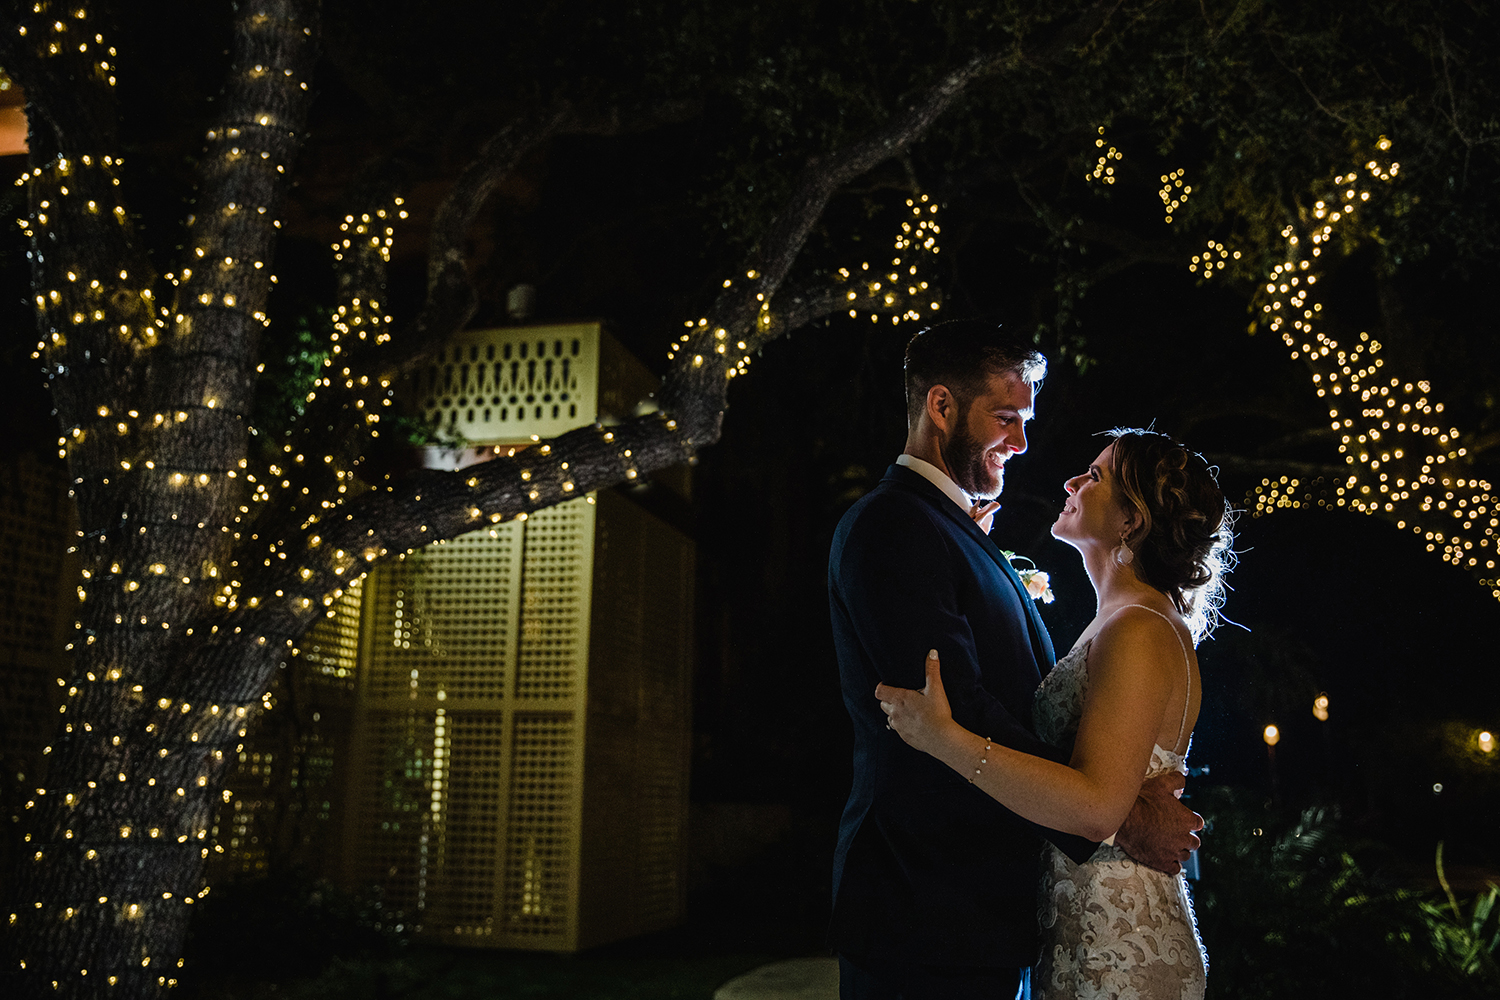 string light trees - night wedding - dramatic photography